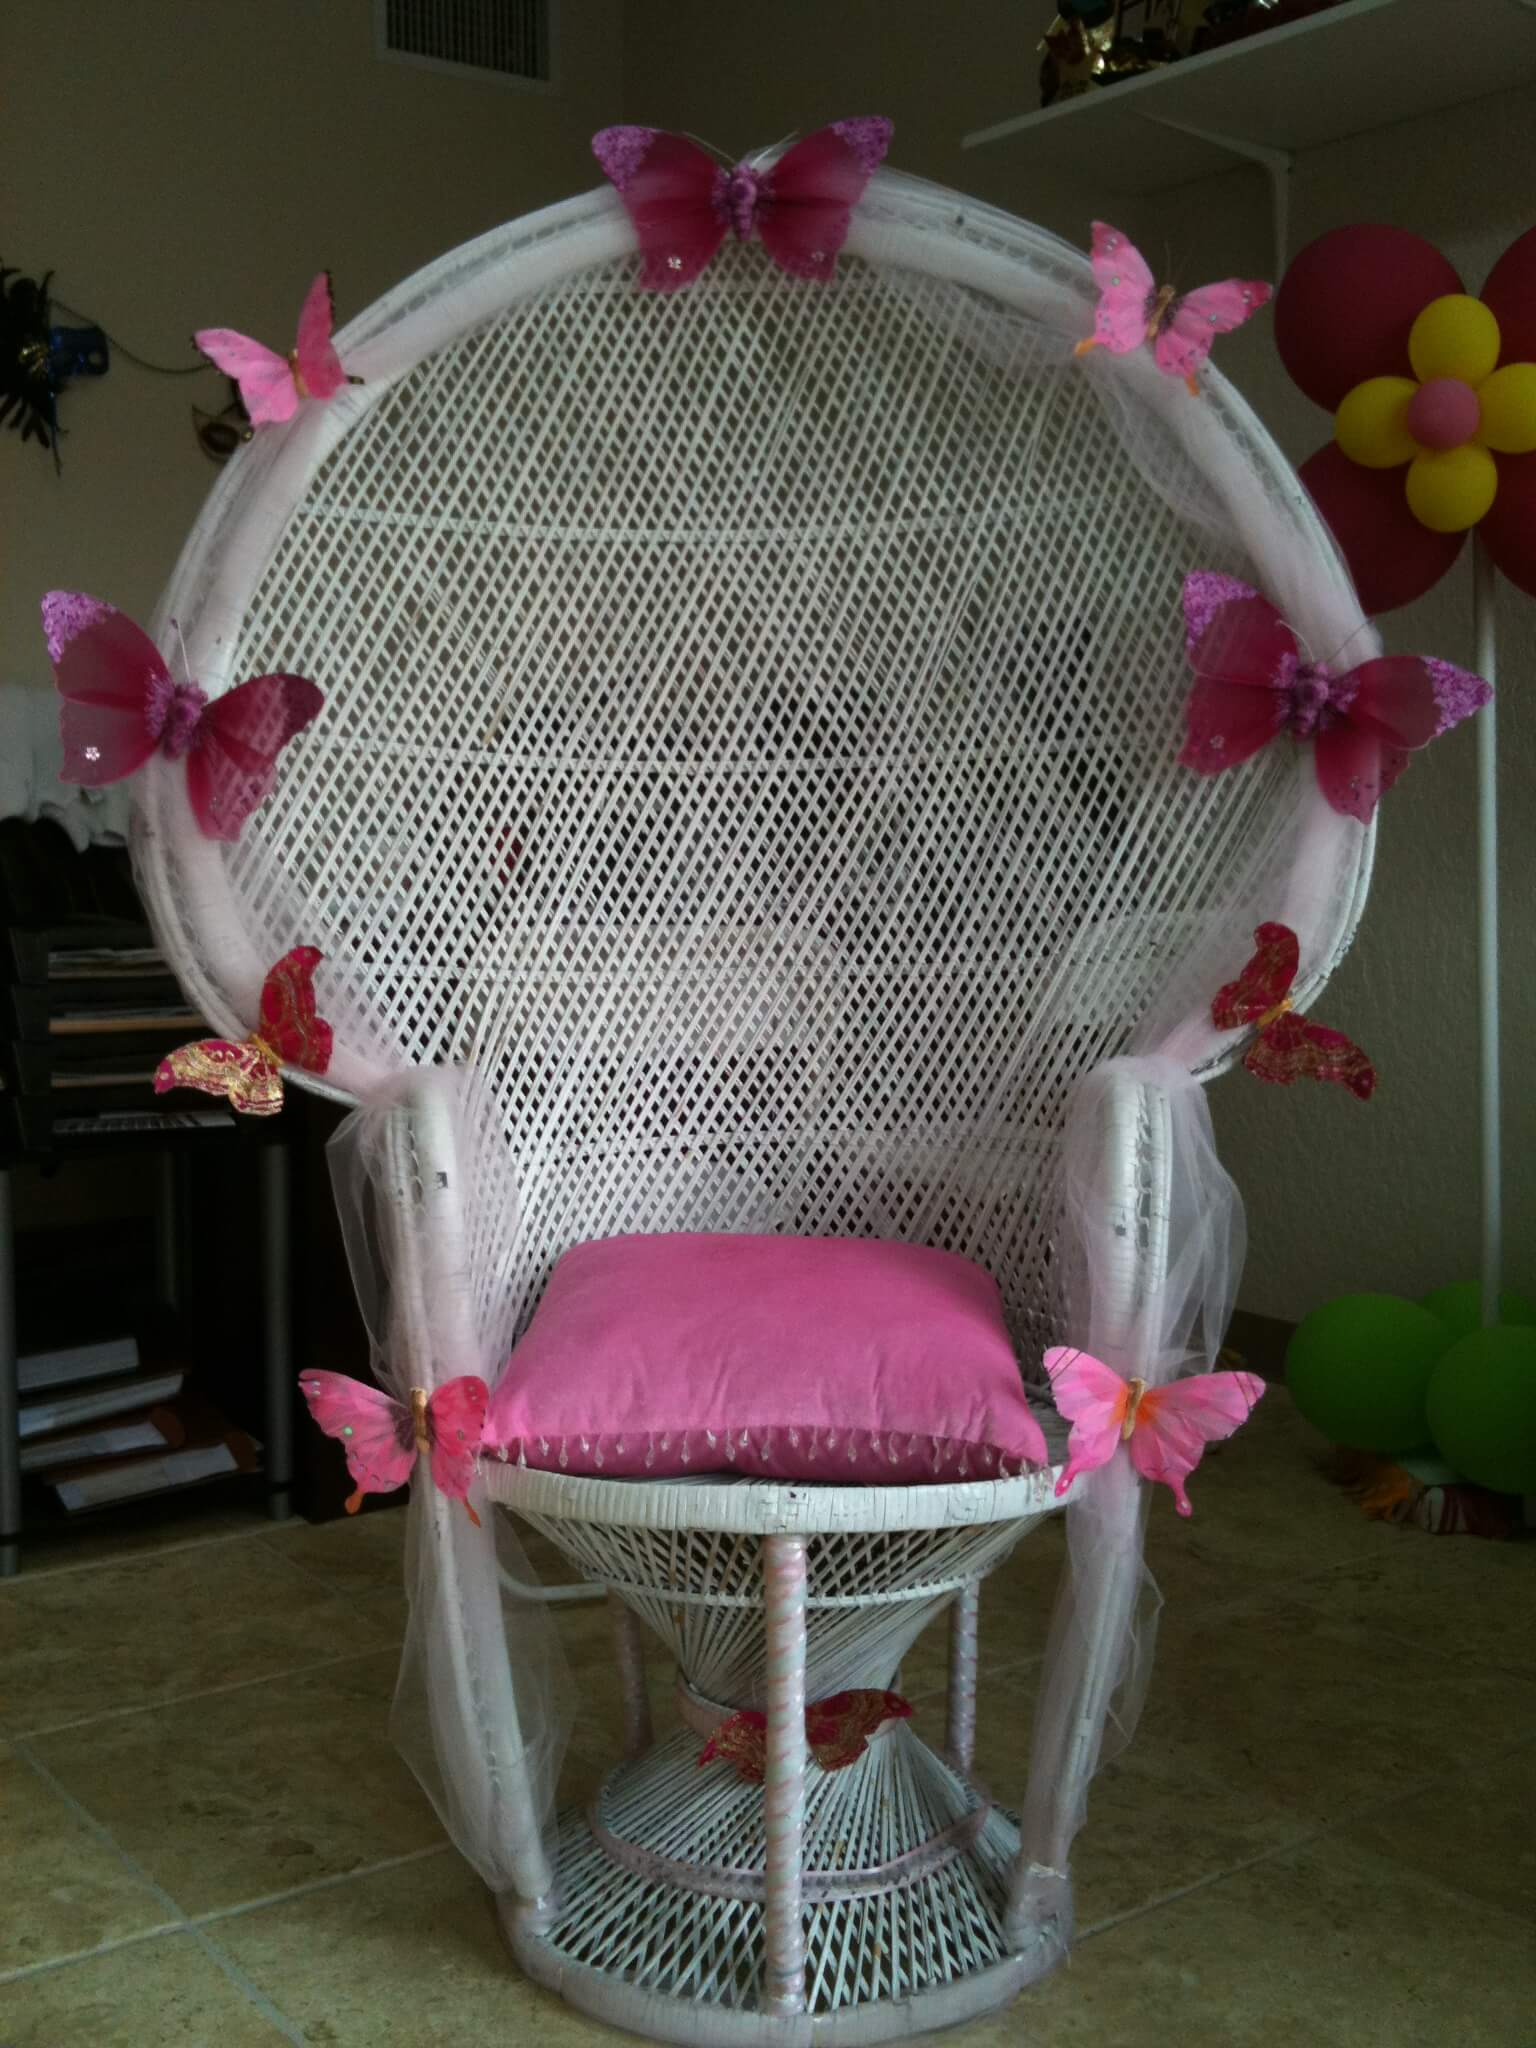 choosing a baby shower chair  baby ideas, Baby shower